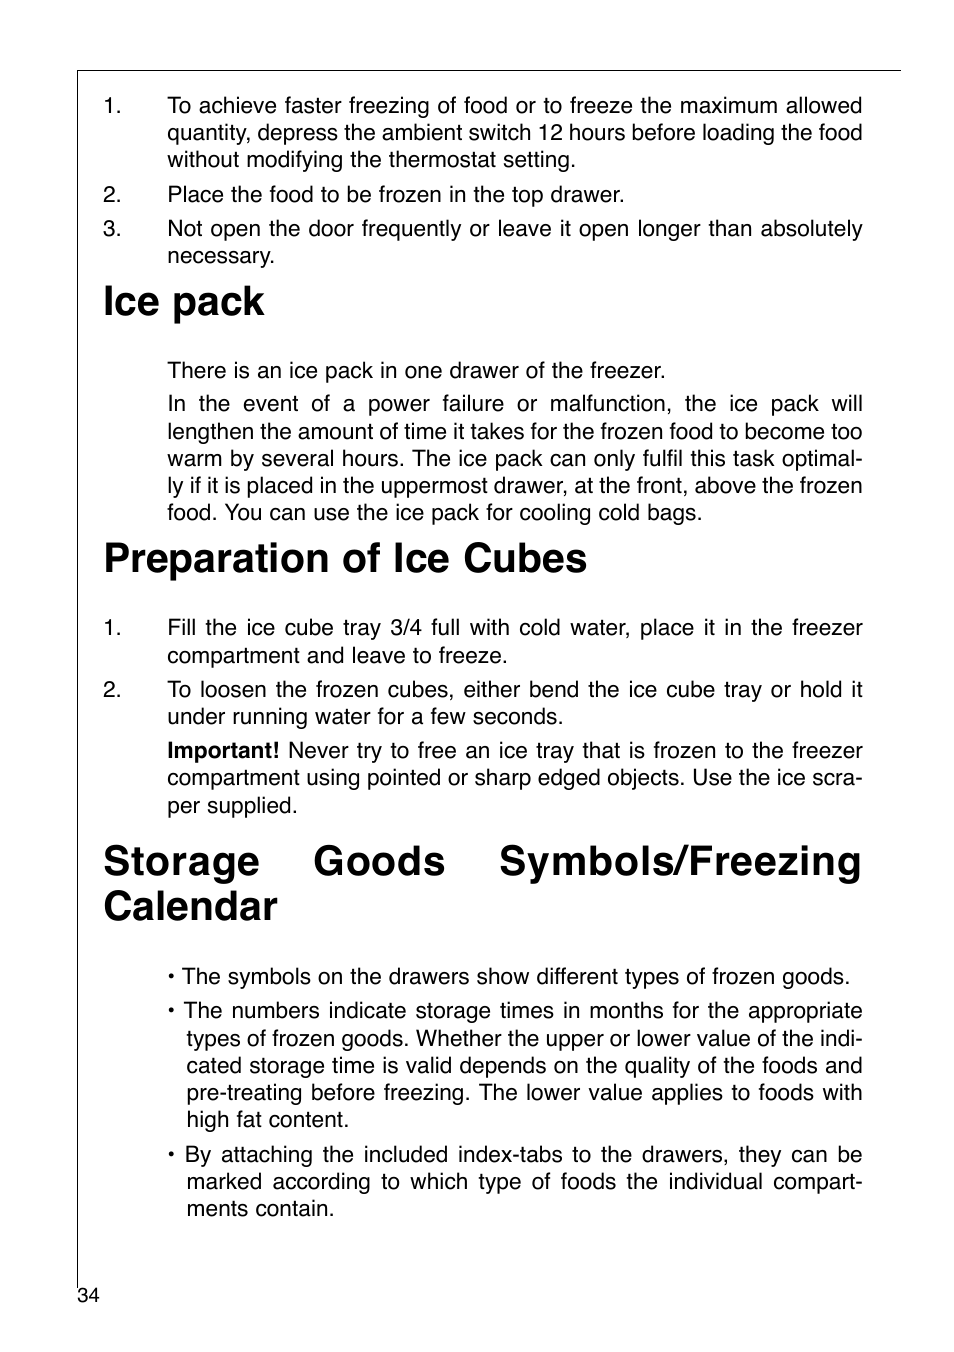 Preparation of ice cubes, Storage goods symbols/freezing